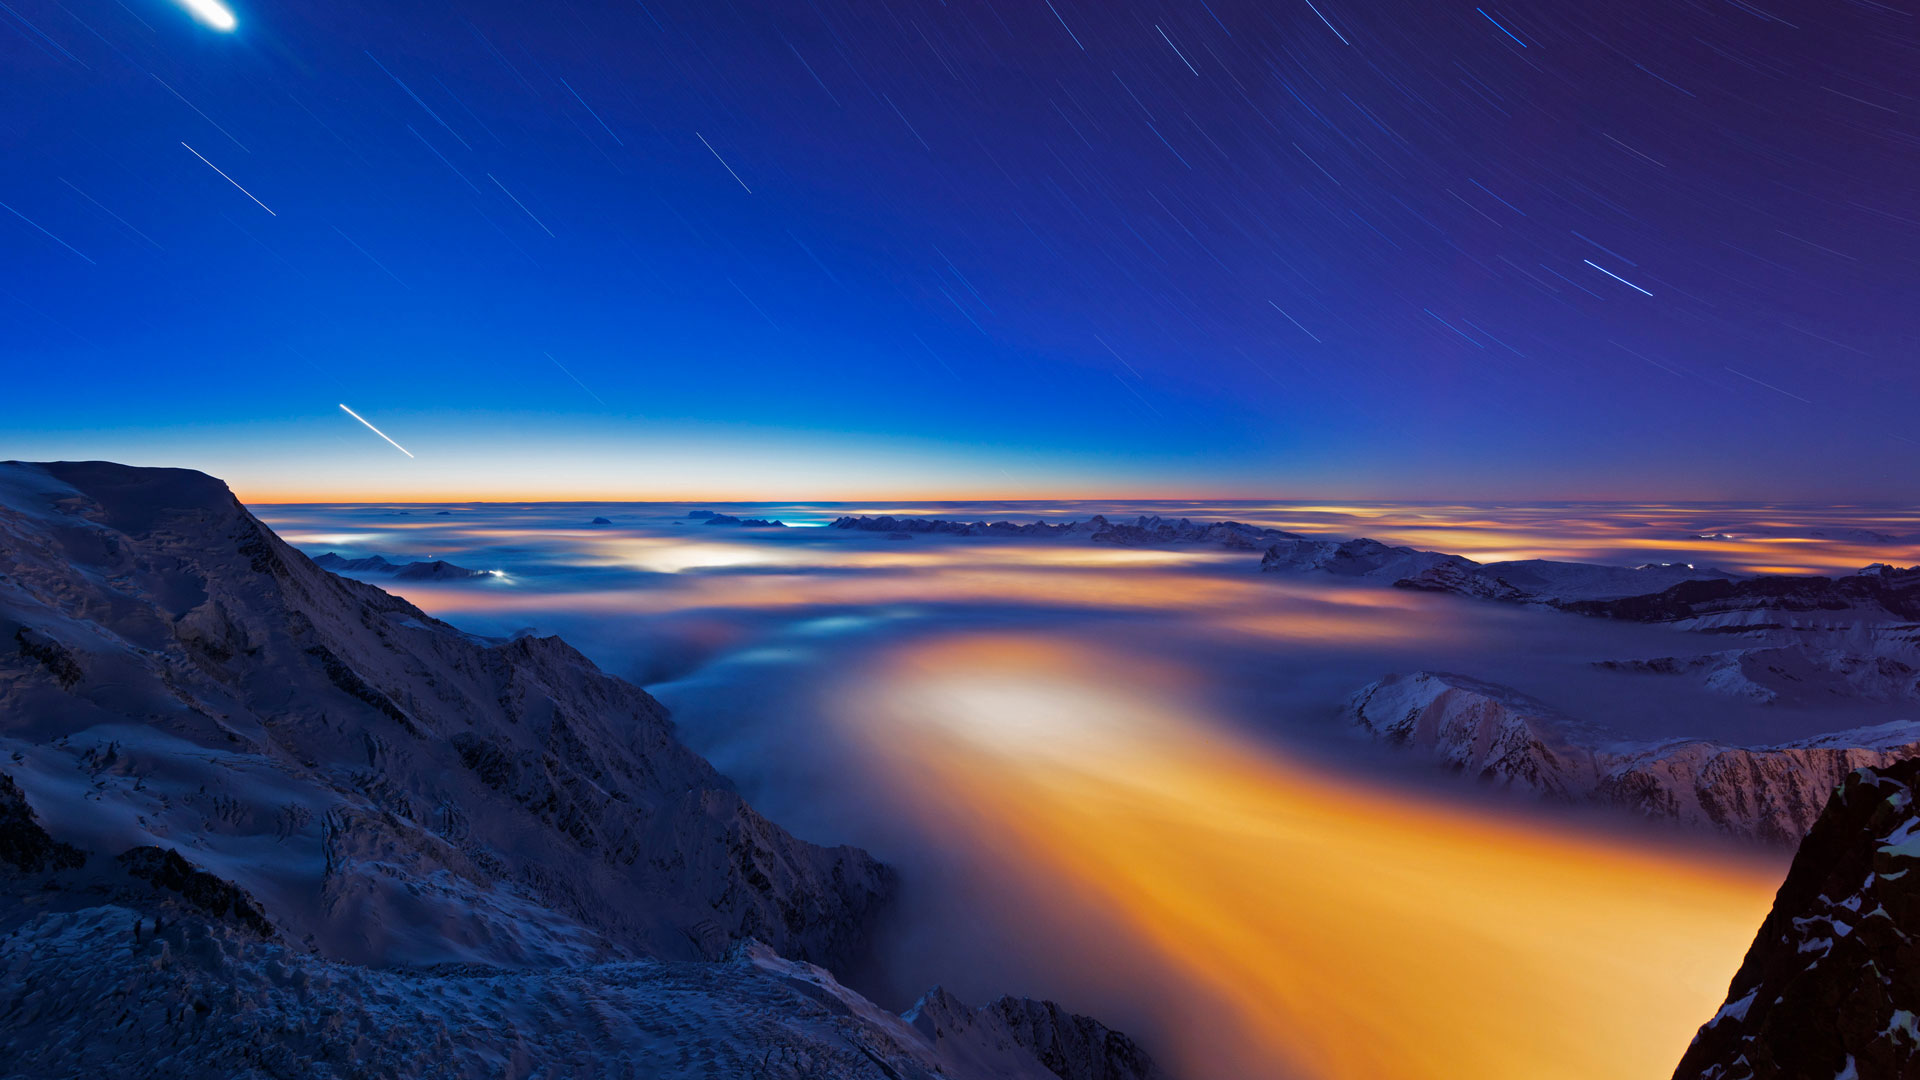 Sea of clouds over Chamonix Valley, France (© Masterfile)